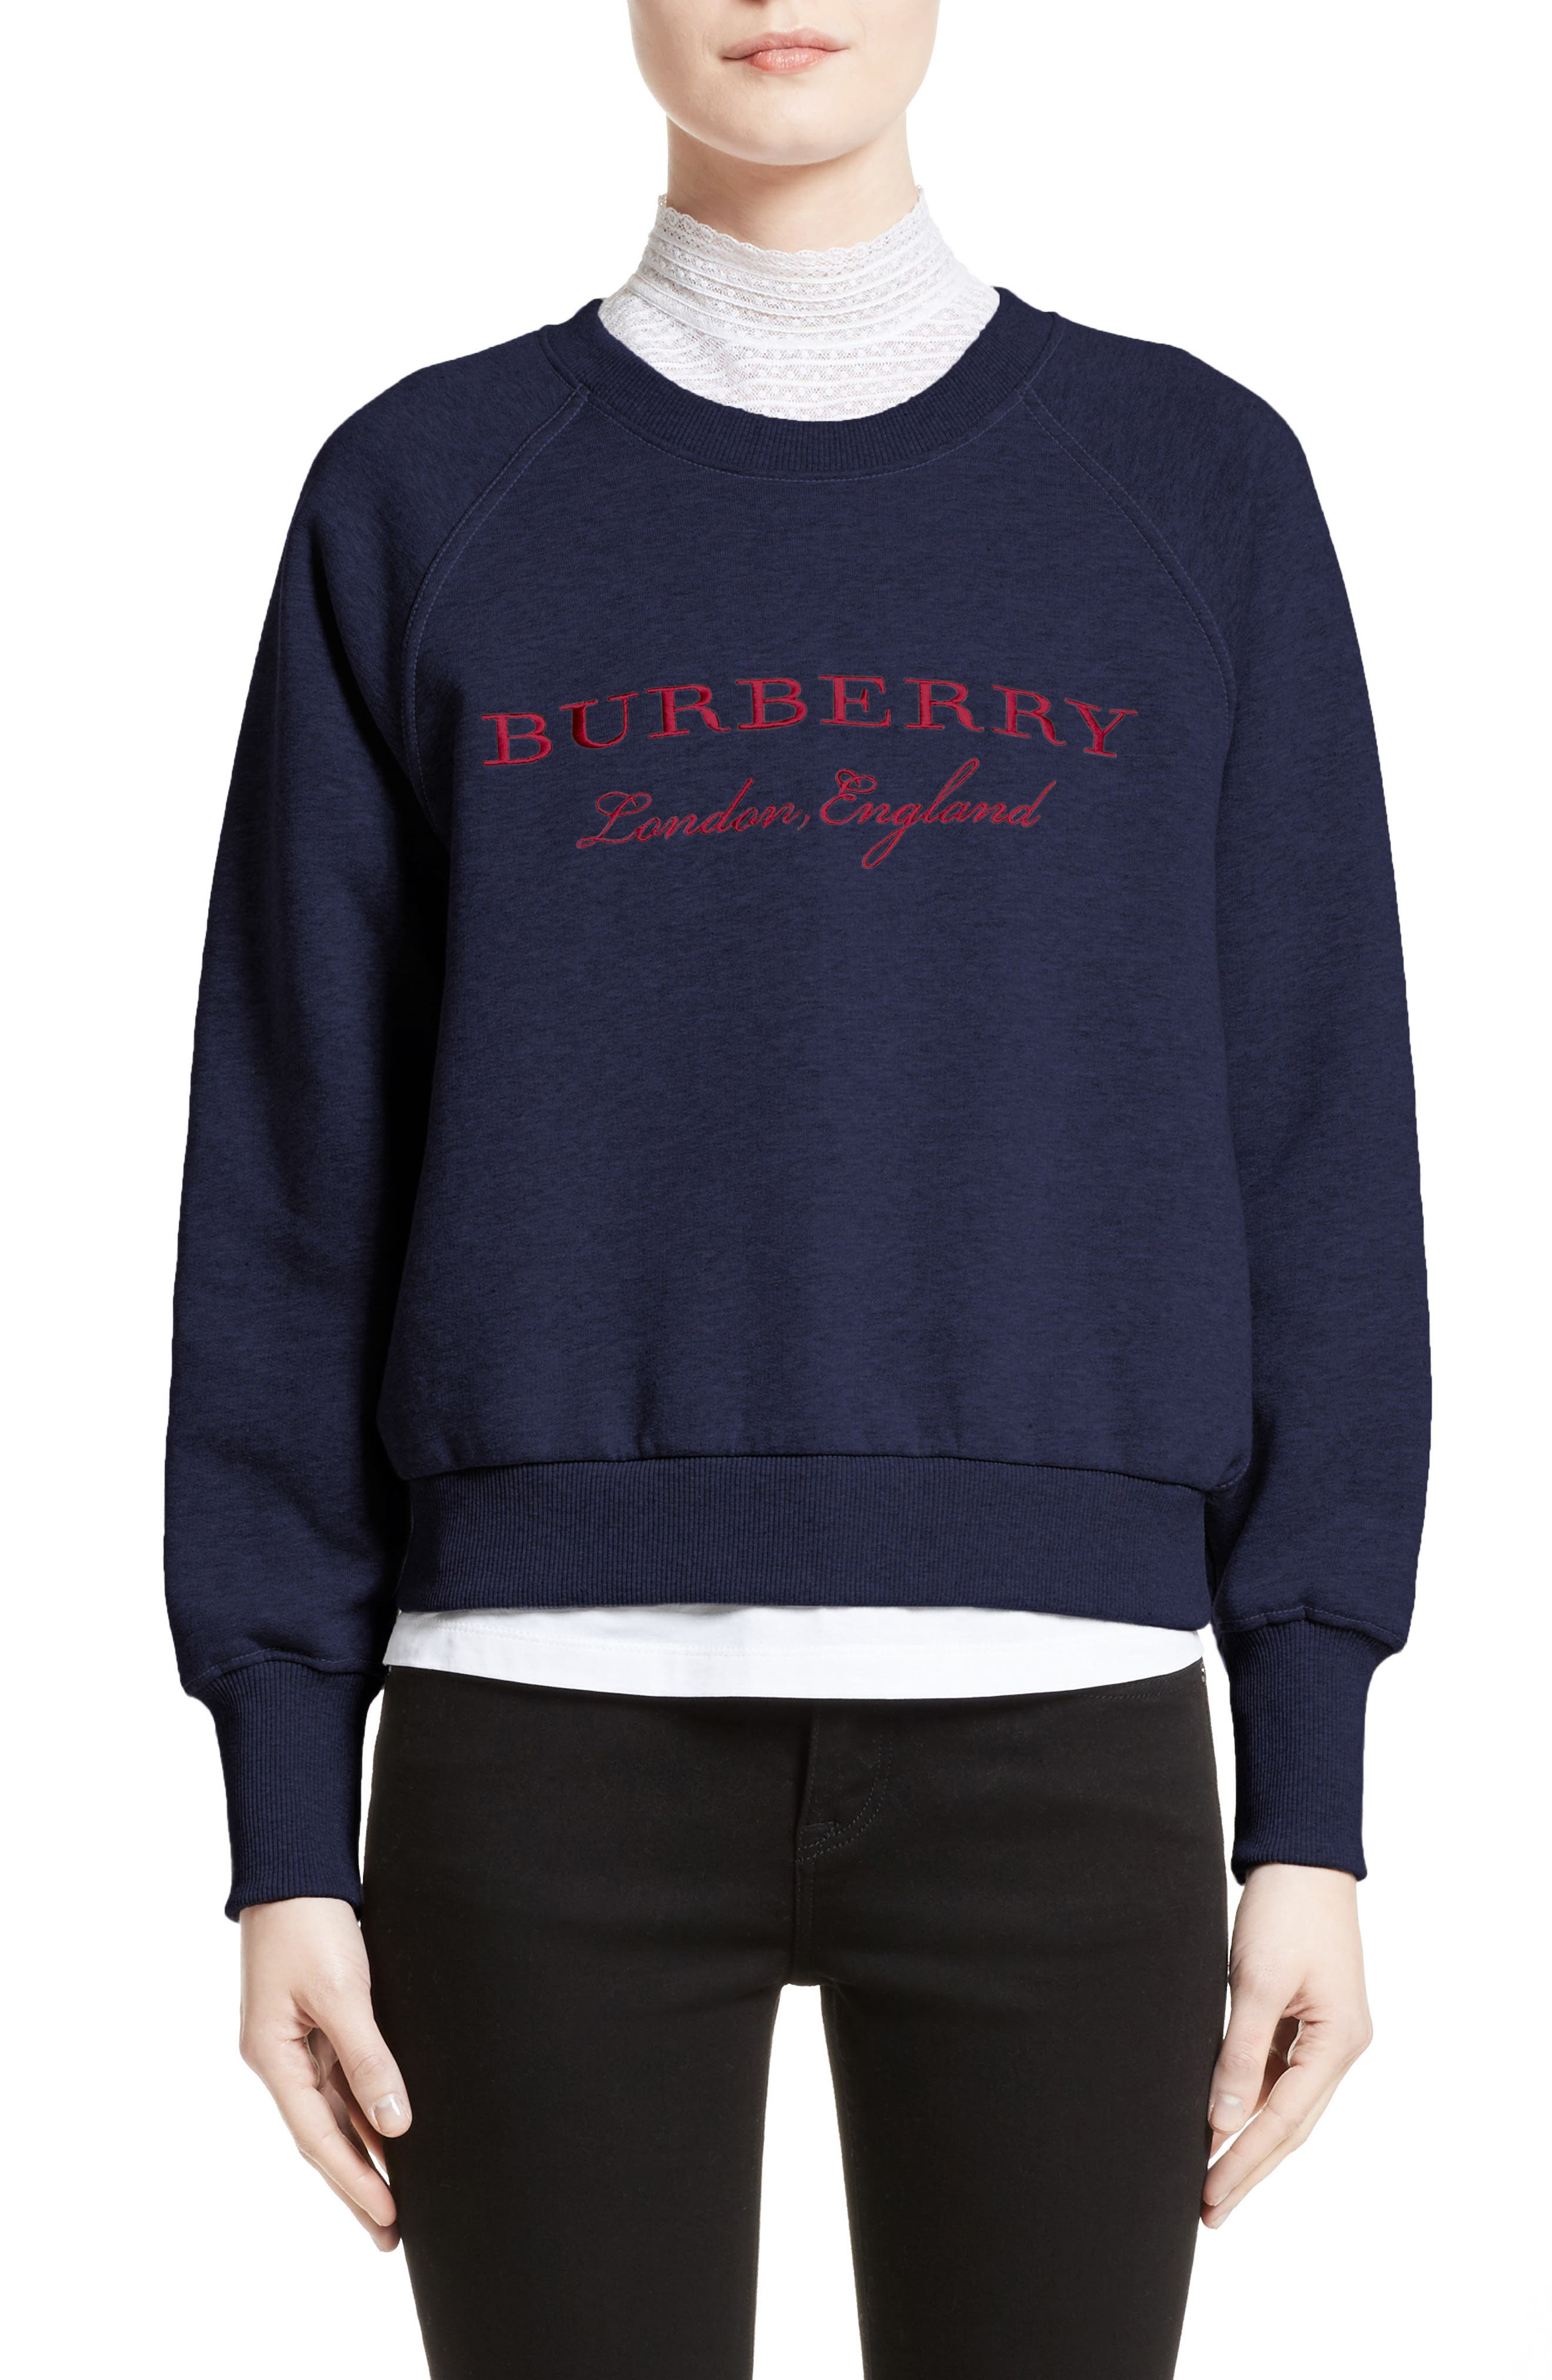 Alternate Image 1 Selected - Burberry Torto Embroidered Sweatshirt